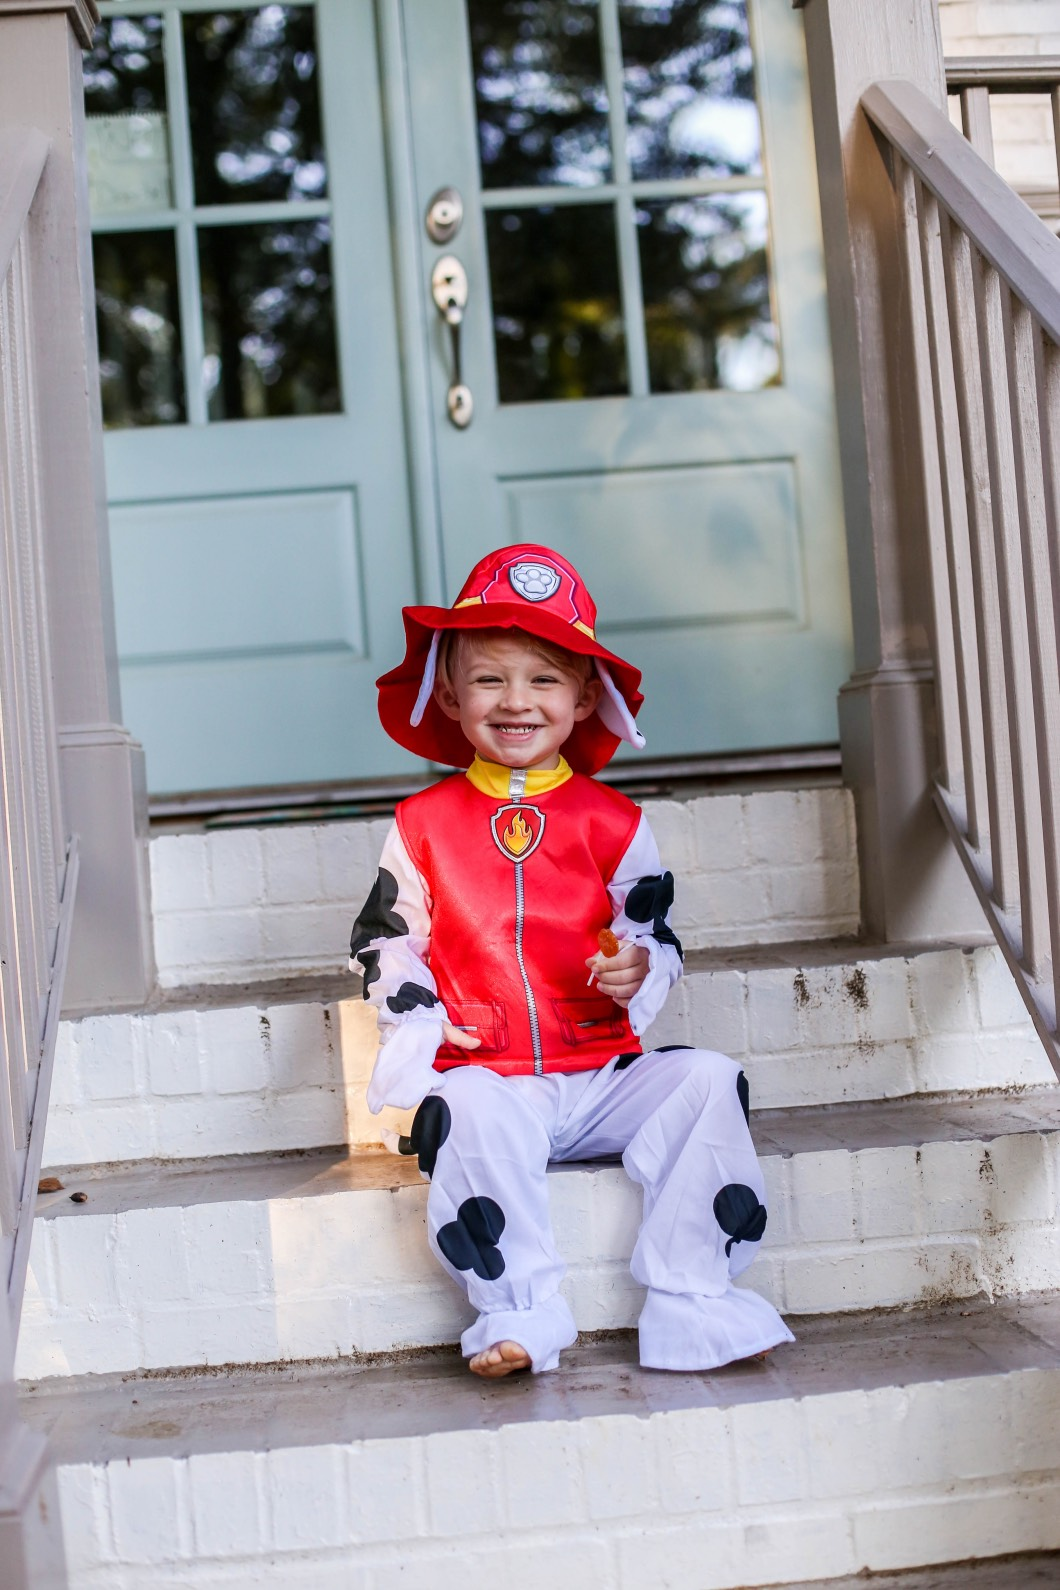 Party City Paw Patrol Fireman Toddler